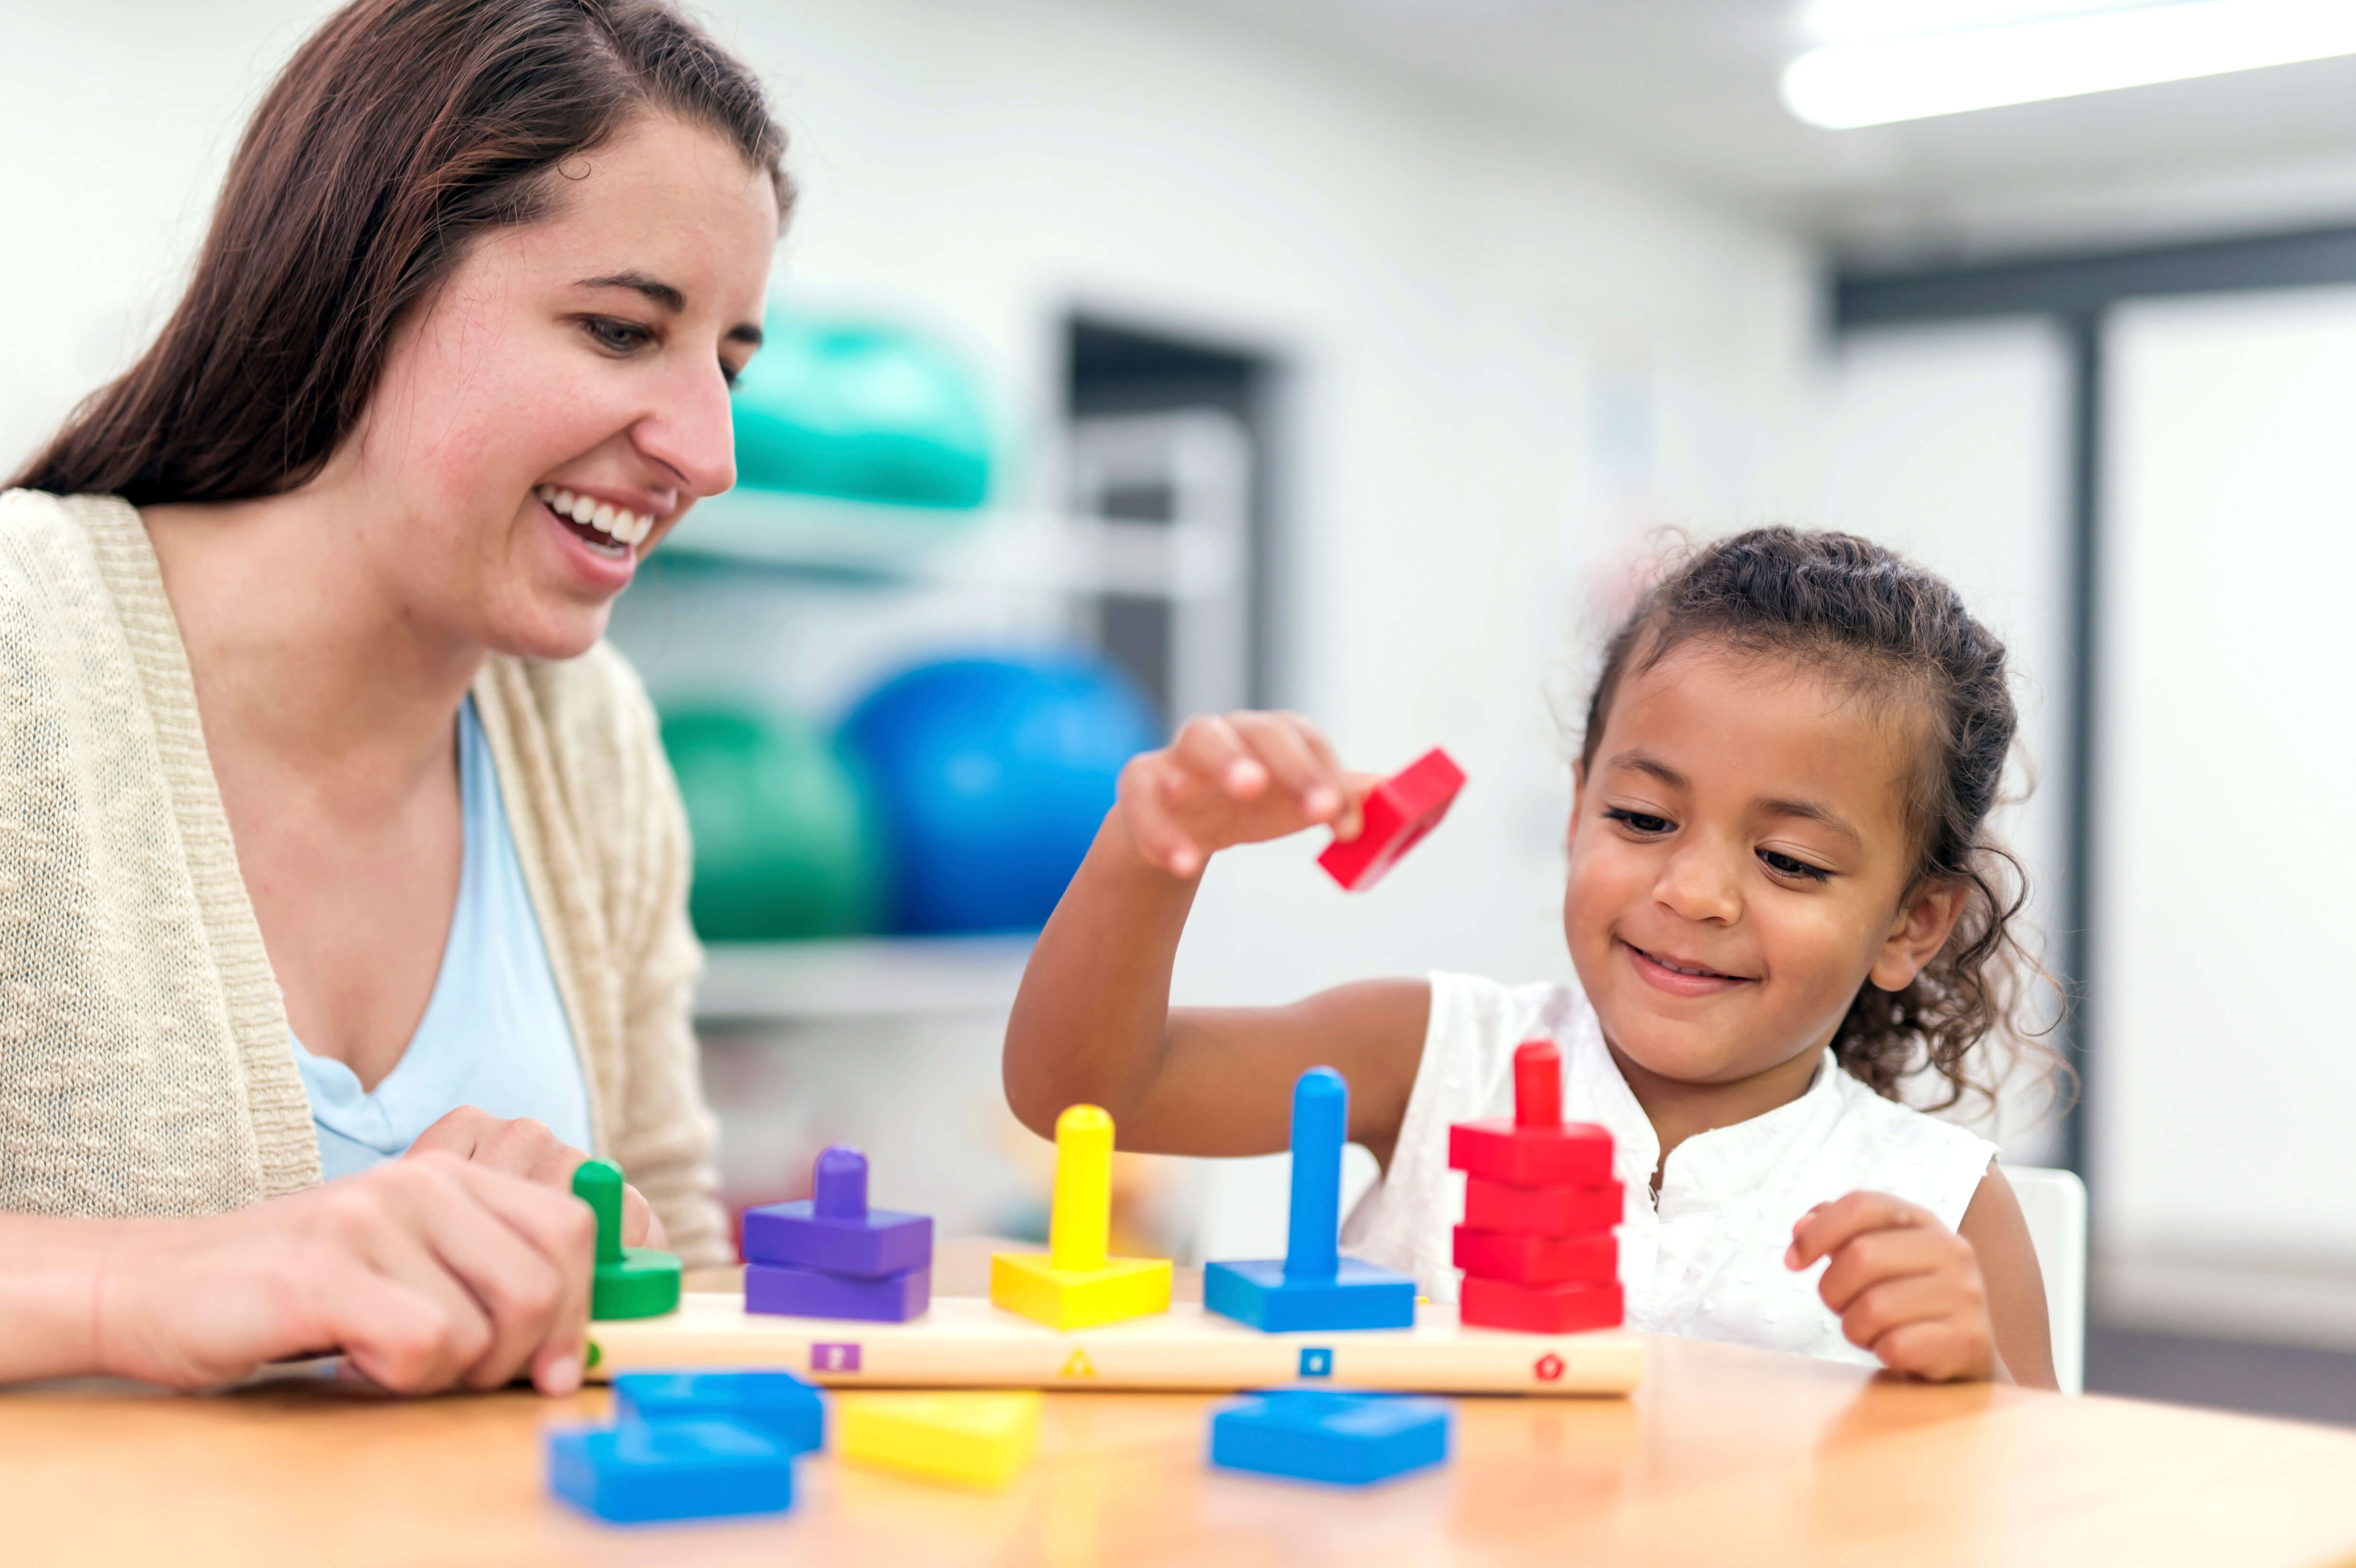 Young-ethnic-girl-doing-an-exercise-in-a-therapy-session - ABA